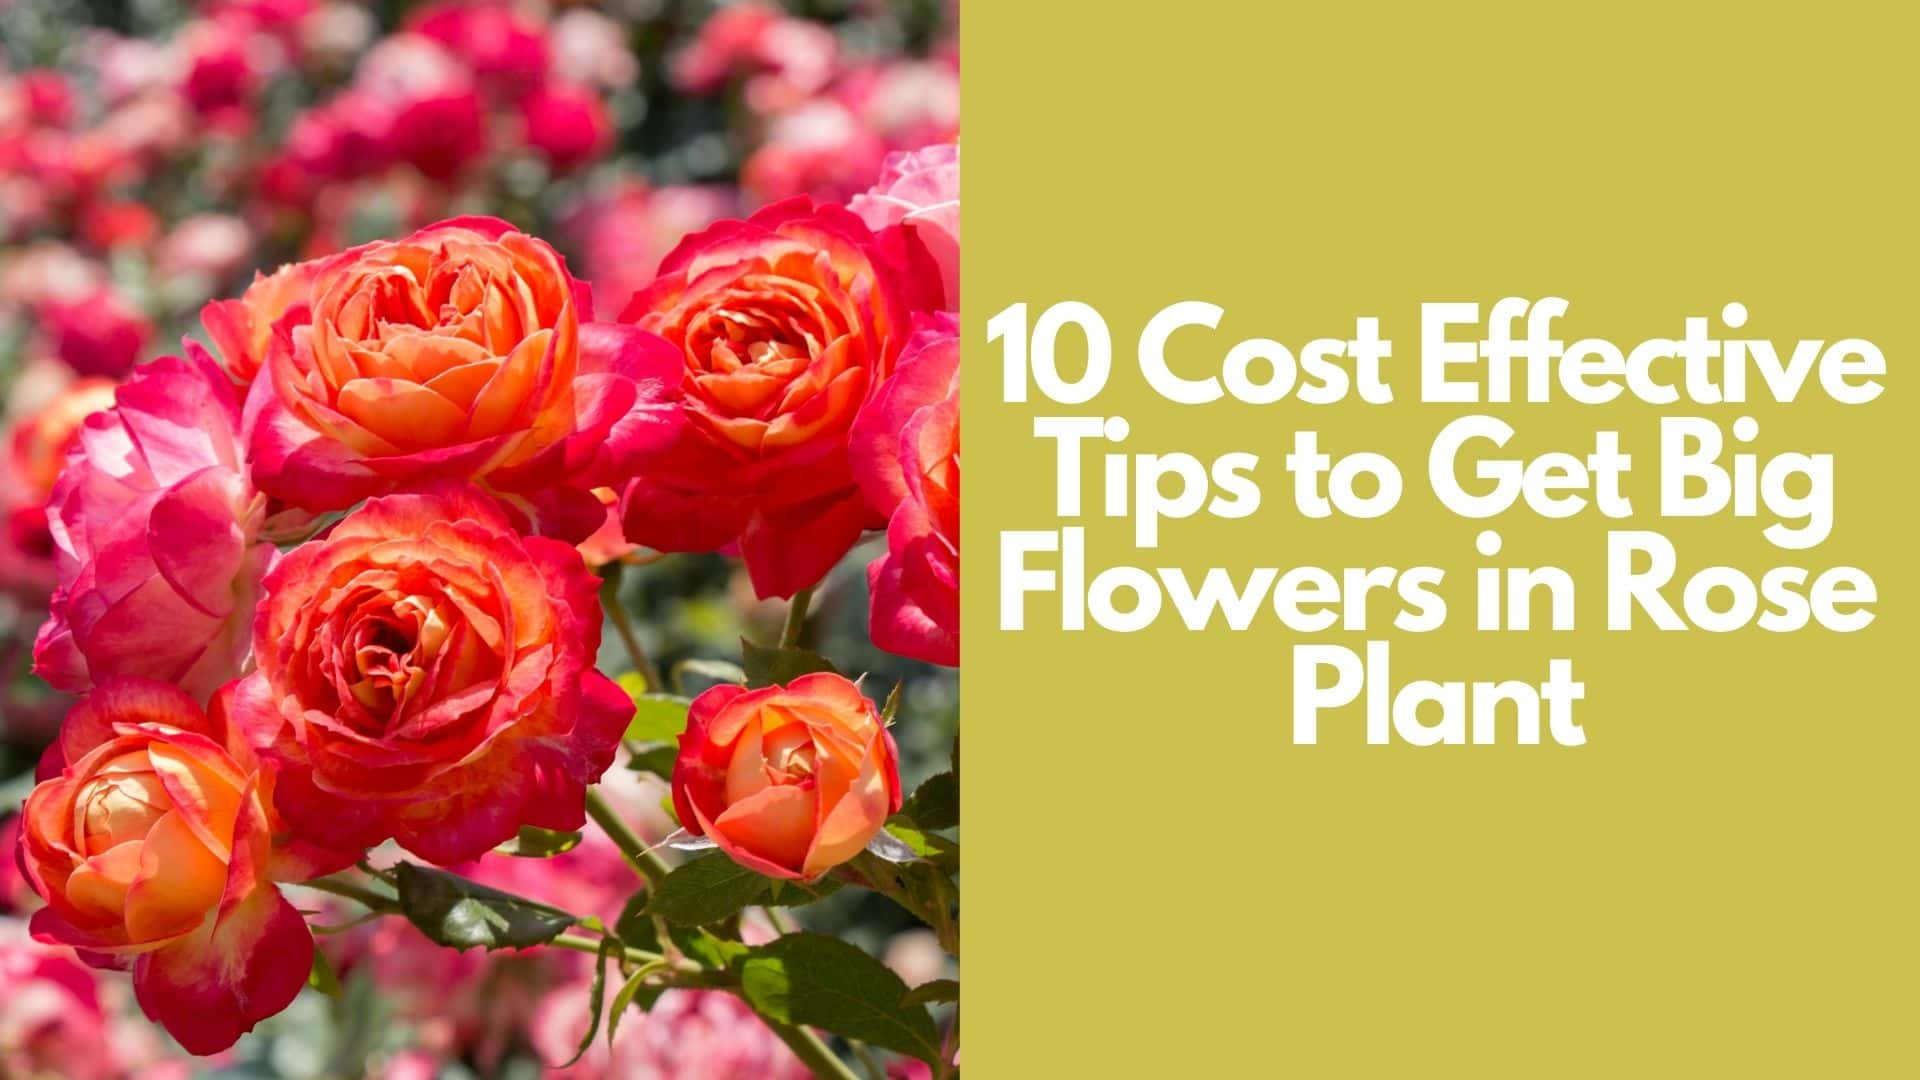 10 Cost Effective Tips to Get Big Flowers in Rose Plant